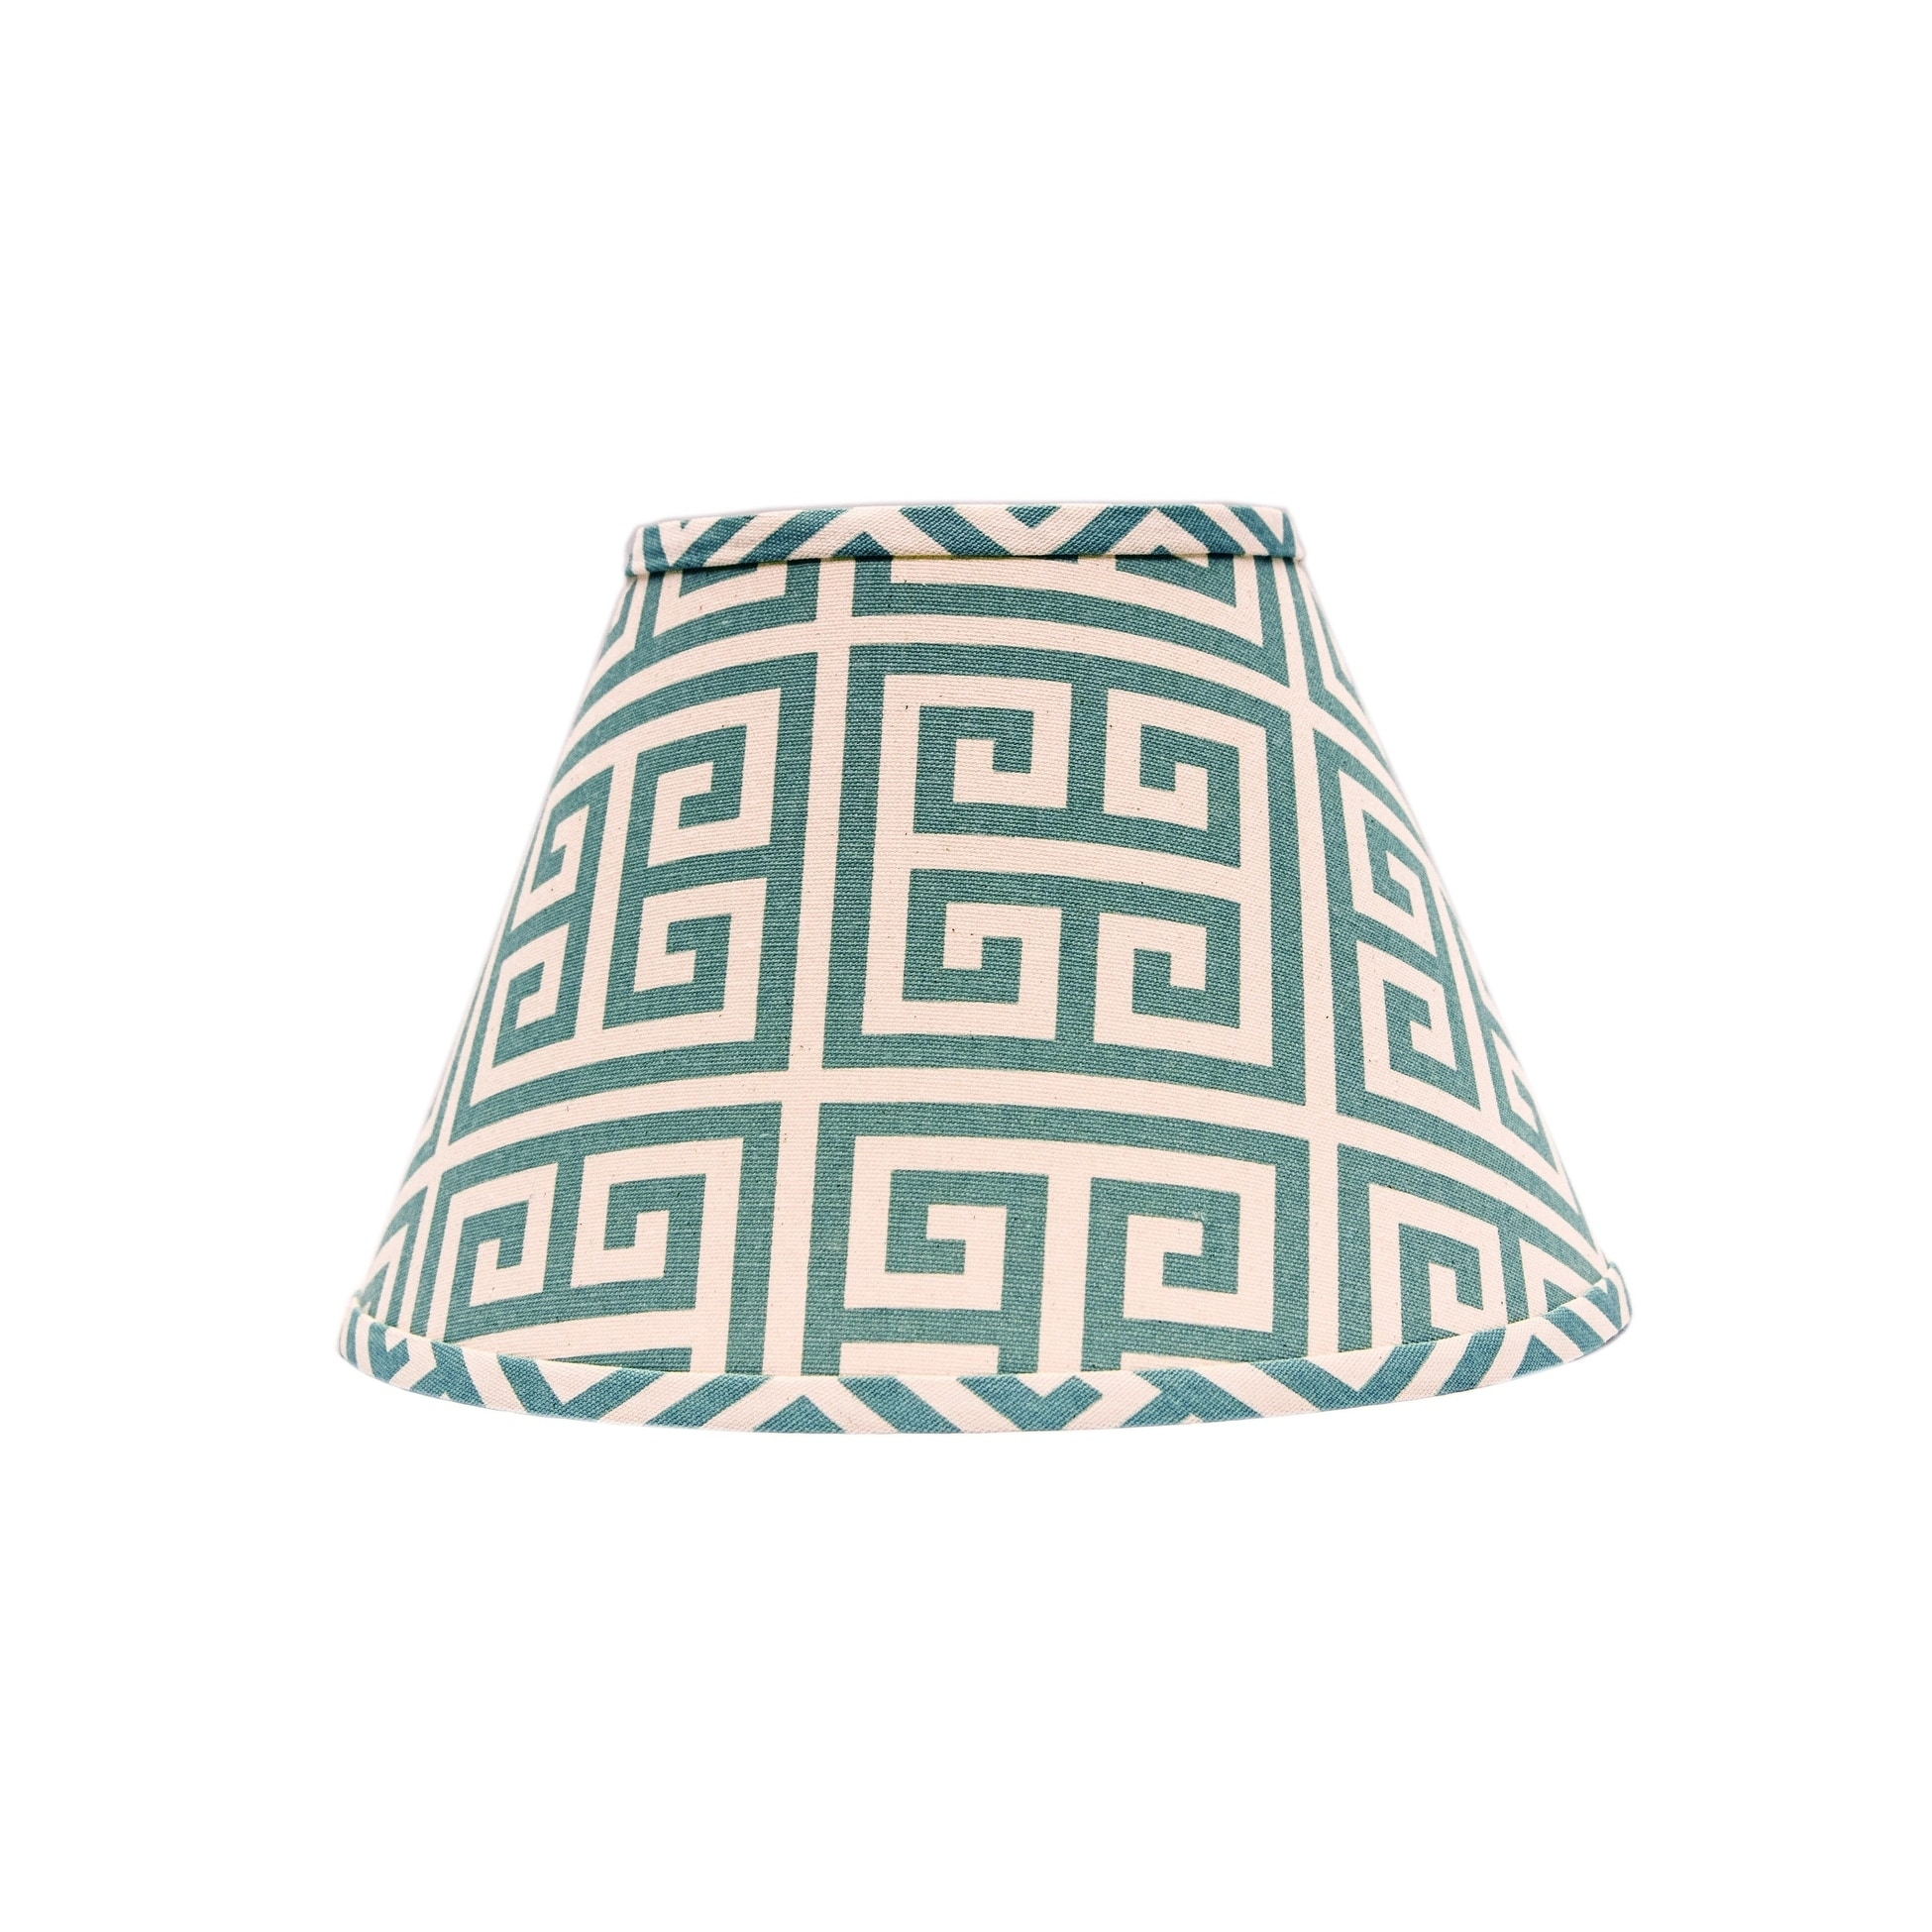 Somette Aqua Greek Key 18 inch Empire Lamp Shade with With Uno